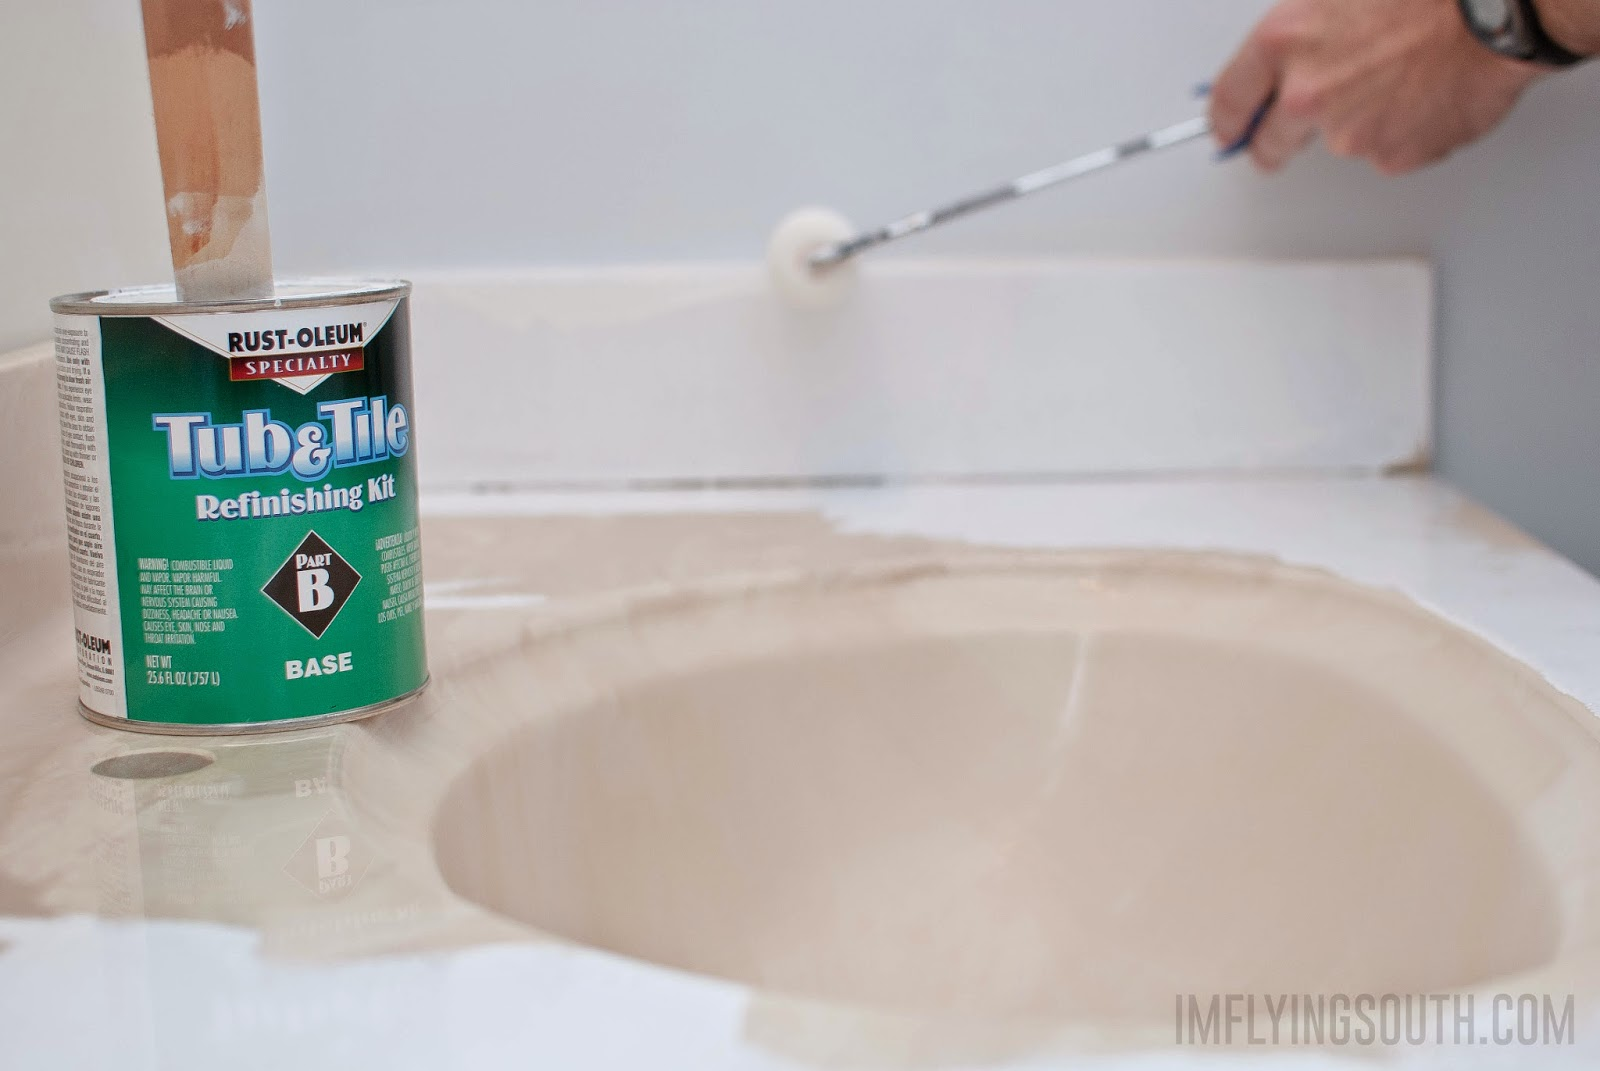 Pretty Porcelain Refinishing Company Big Professional Refinishing Clean Bath Tub Paints Tile Reglazing Cost Old Spray Paint Bathtub SoftPorcelain Bathtub Repair Remodelaholic | Painted Bathroom Sink And Countertop Makeover